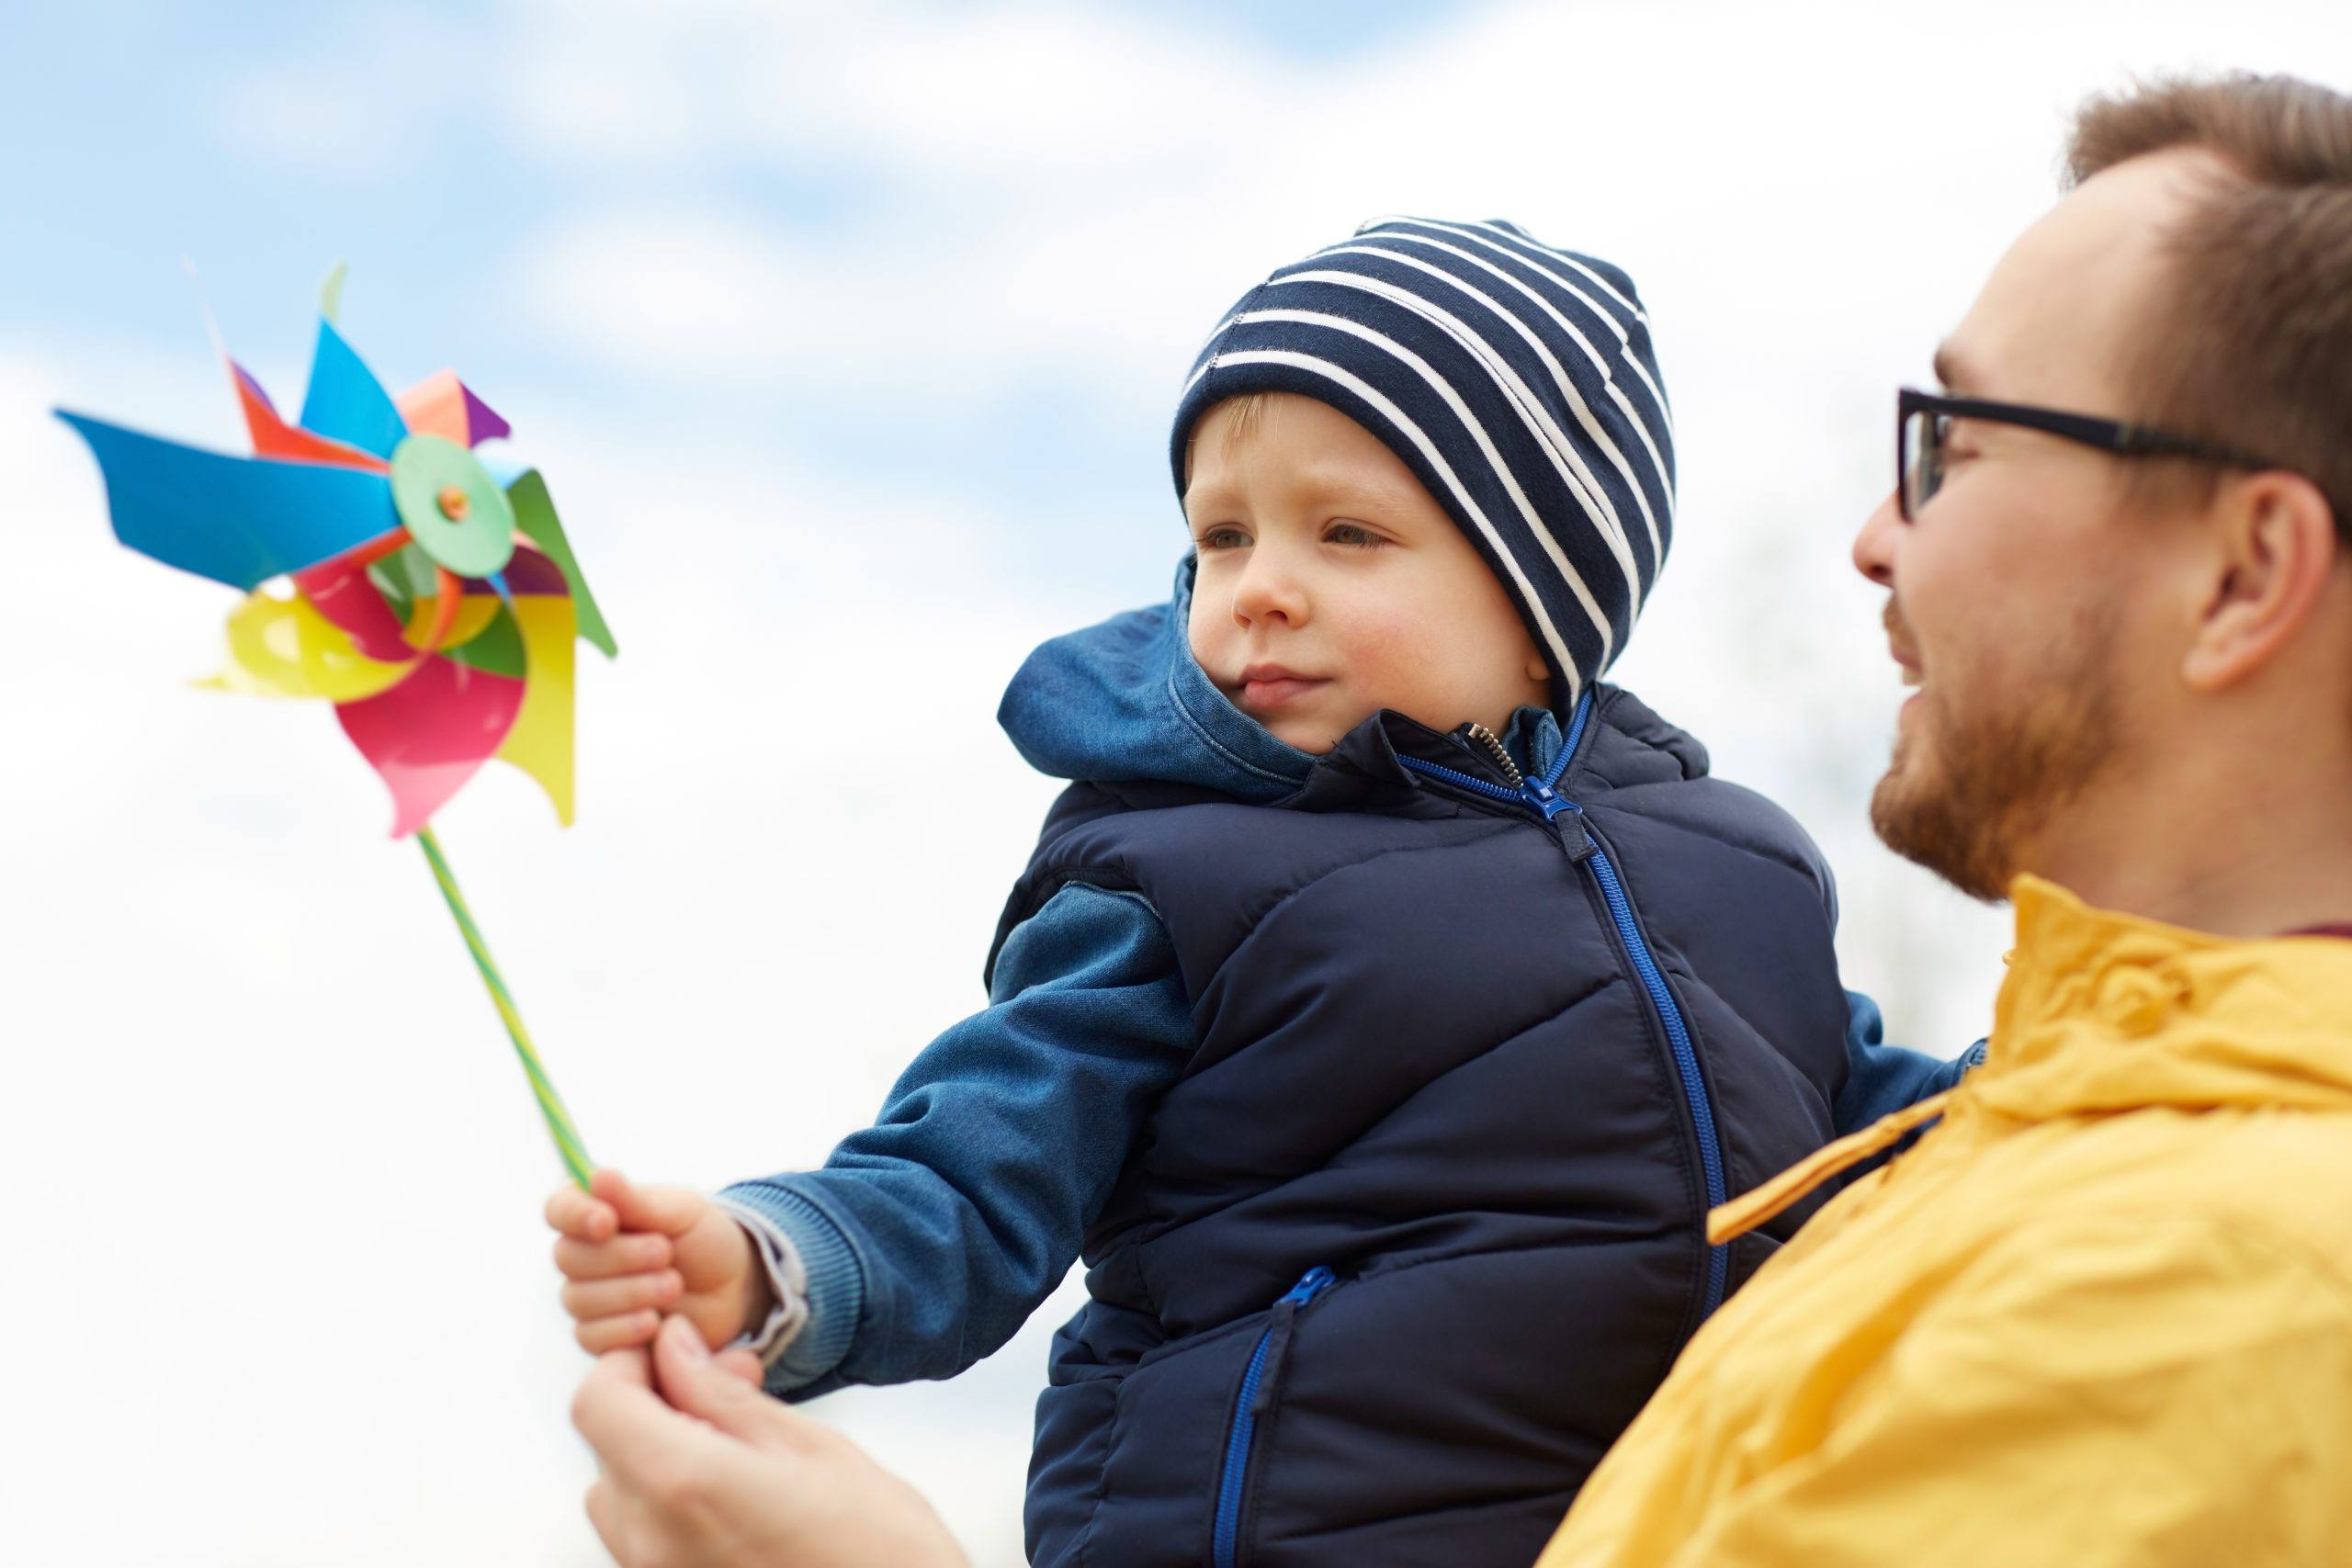 Self-therapy can help parents of children with autism keep a balanced life and parent their children better. Check out how with these tips. #autismparenting #autism #asd #selfcare